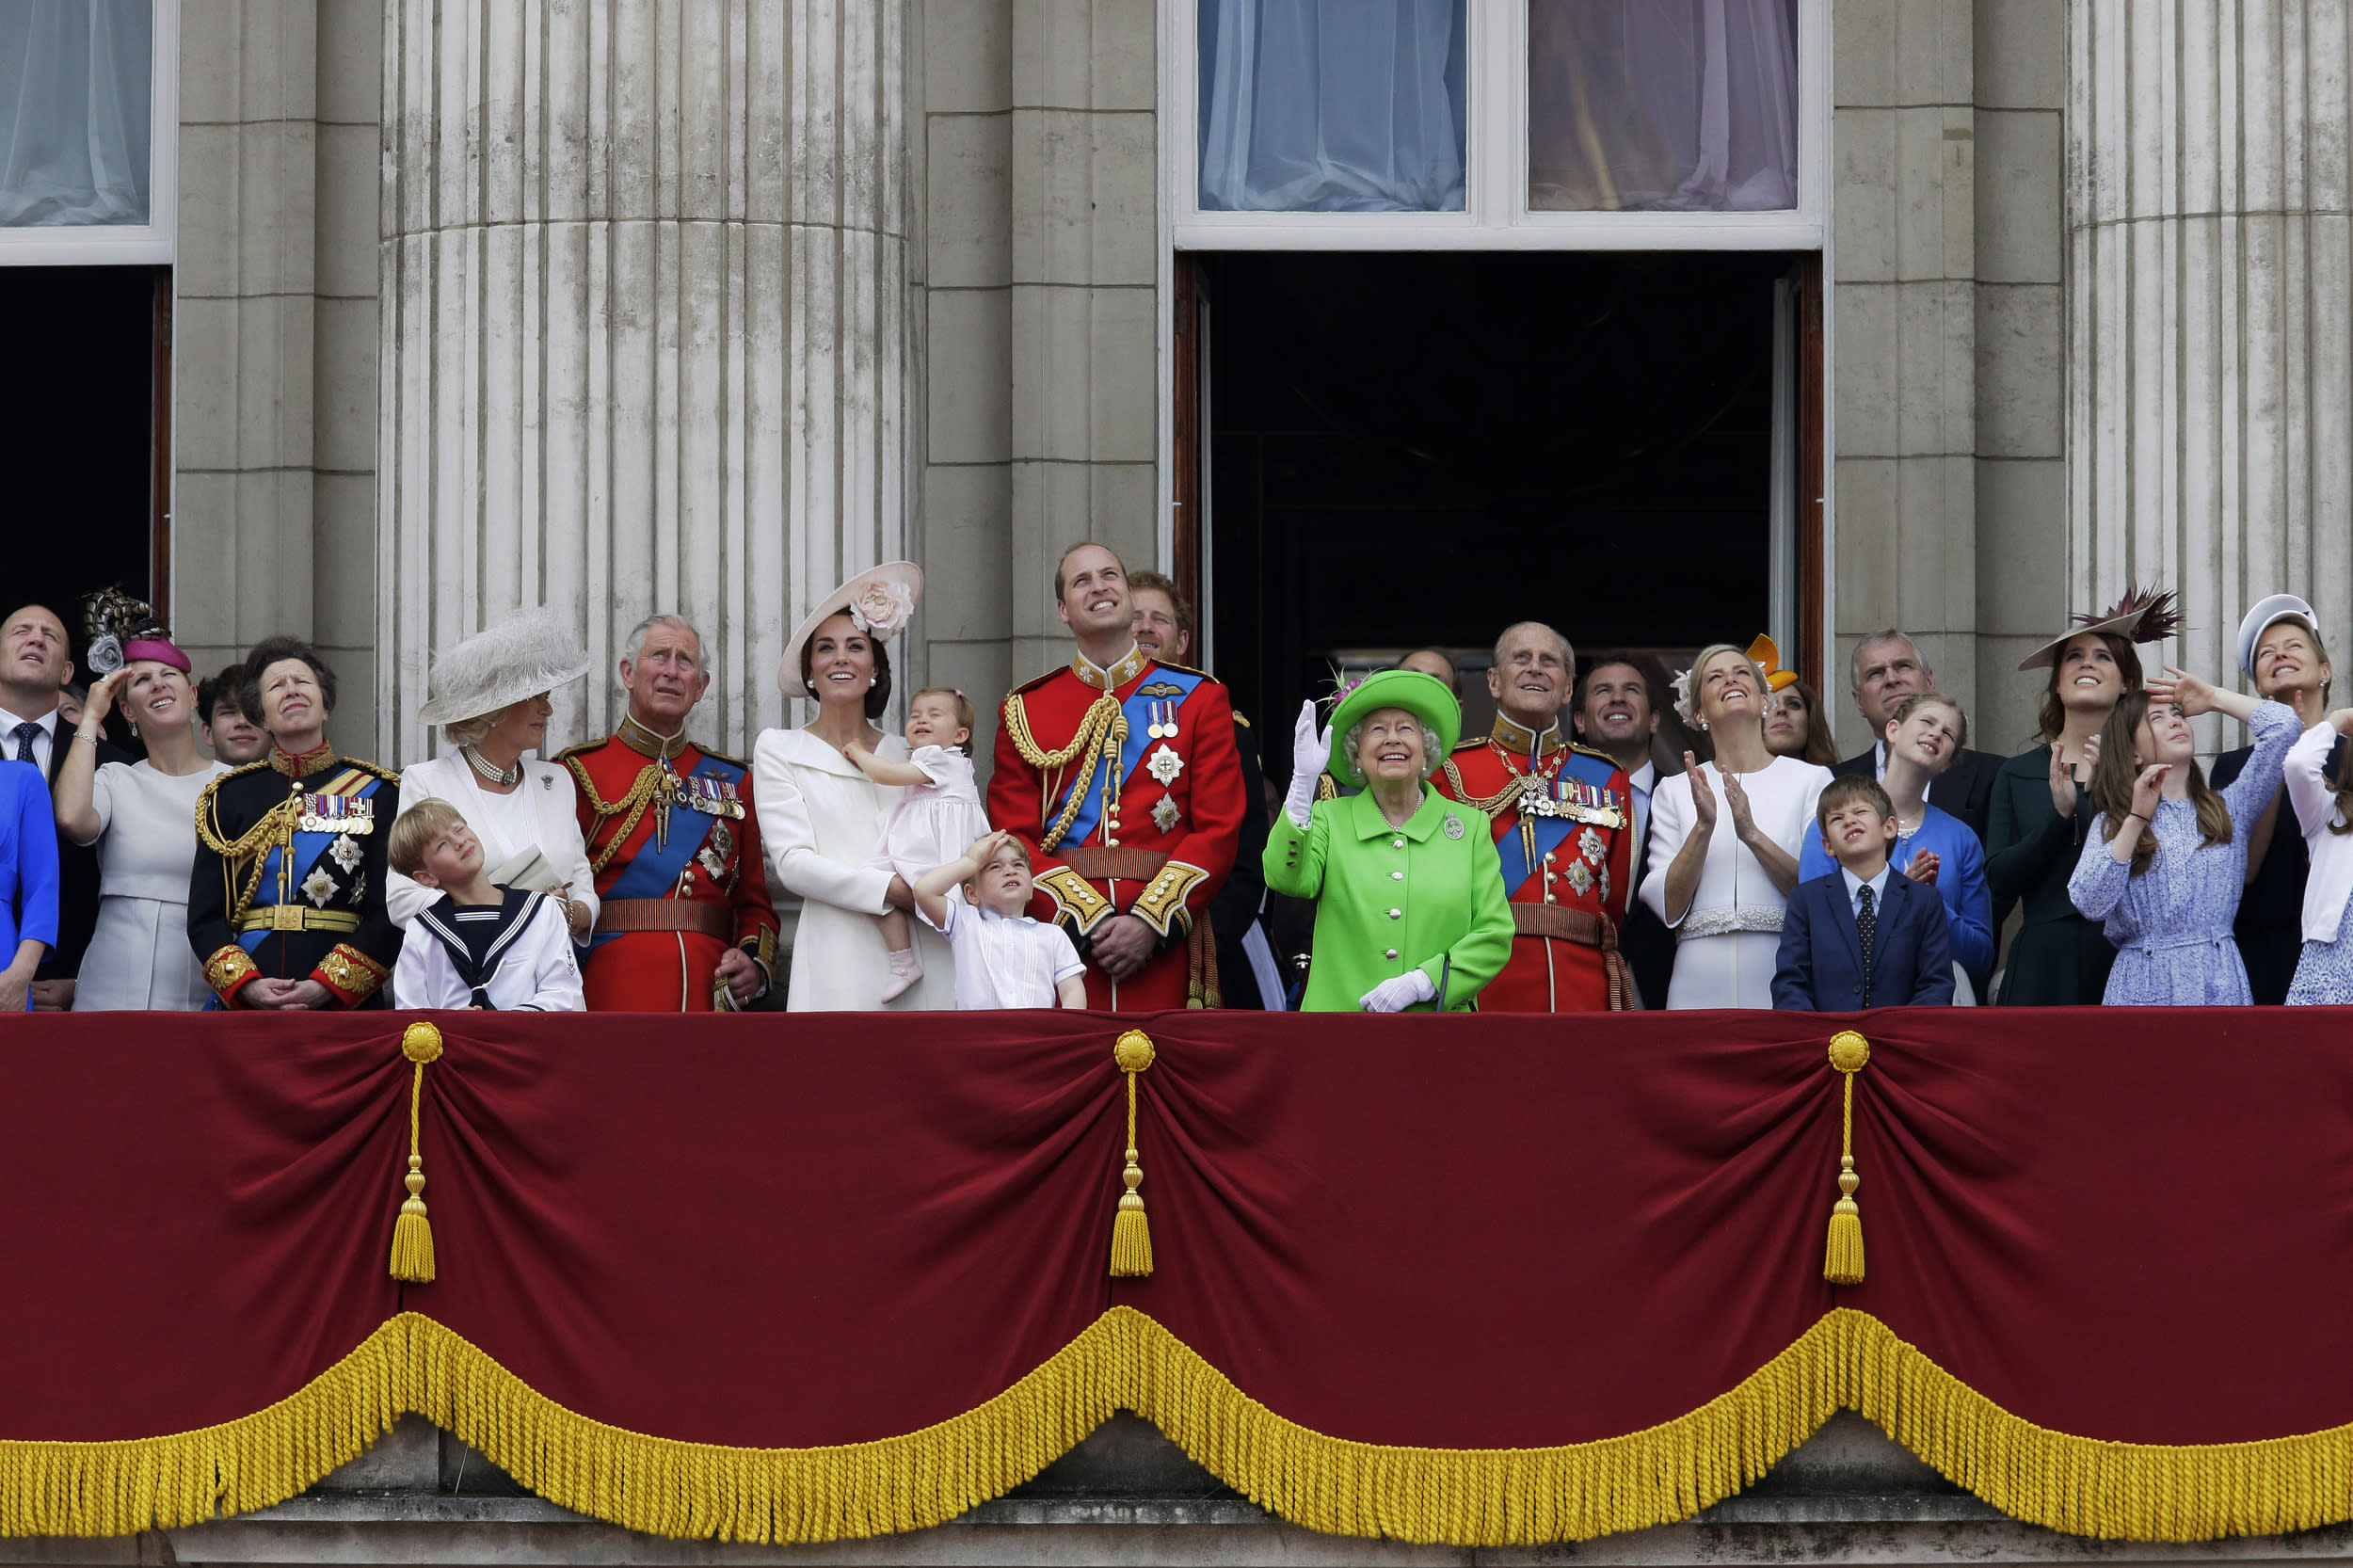 """2016 AP YEAR END PHOTOS - Britain's Queen Elizabeth II waves as she watches the flypast, with Prince Philip, to right, Prince William, centre, with his son Prince George, front, Kate, Duchess of Cambridge holding Princess Charlotte, centre left, with The Prince of Wales standing with The Duchess of Cornwall, and Princess Anne, fourth left, on the balcony during the Trooping The Colour parade at Buckingham Palace, in London, on June 11, 2016. Hundreds of soldiers in ceremonial dress marched in London in the annual parade to mark the official birthday of Queen Elizabeth II. The Trooping the Colour tradition originates from preparations for battle, when flags were carried or """"trooped"""" down the rank for soldiers to see. (AP Photo/Tim Ireland, File)"""